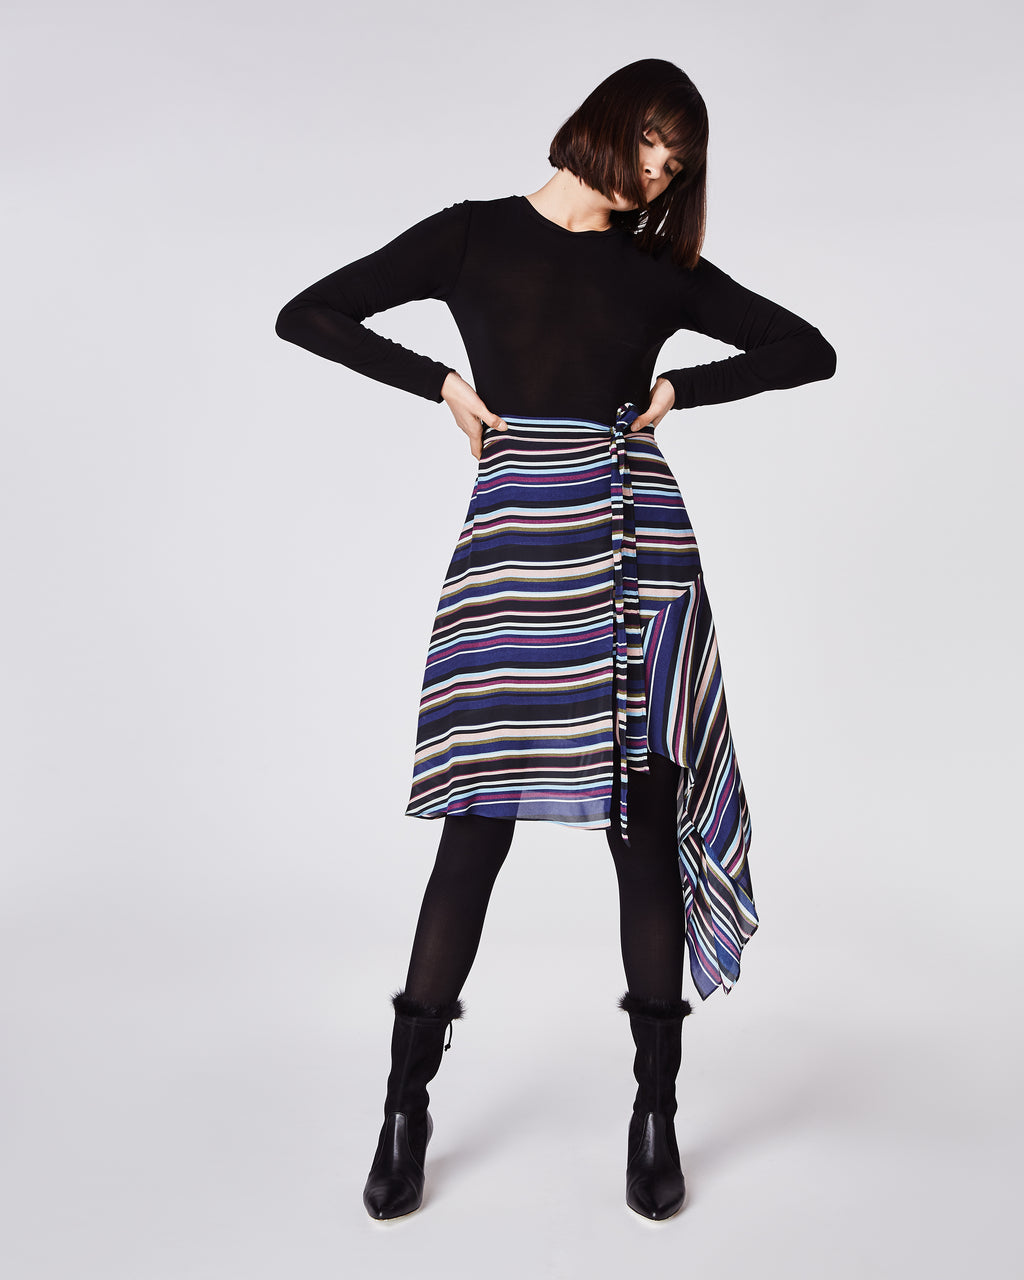 BJ10181 - FLIGHT STRIPE ASYMMETRICAL SKIRT - bottoms - skirts - In a light, striped silk, this skirt hugs the waist and flow out to an asymmetrical body. Pairs perfectly with a basic top and booties. Finished with a concealed zipper and fully lined. Final Sale